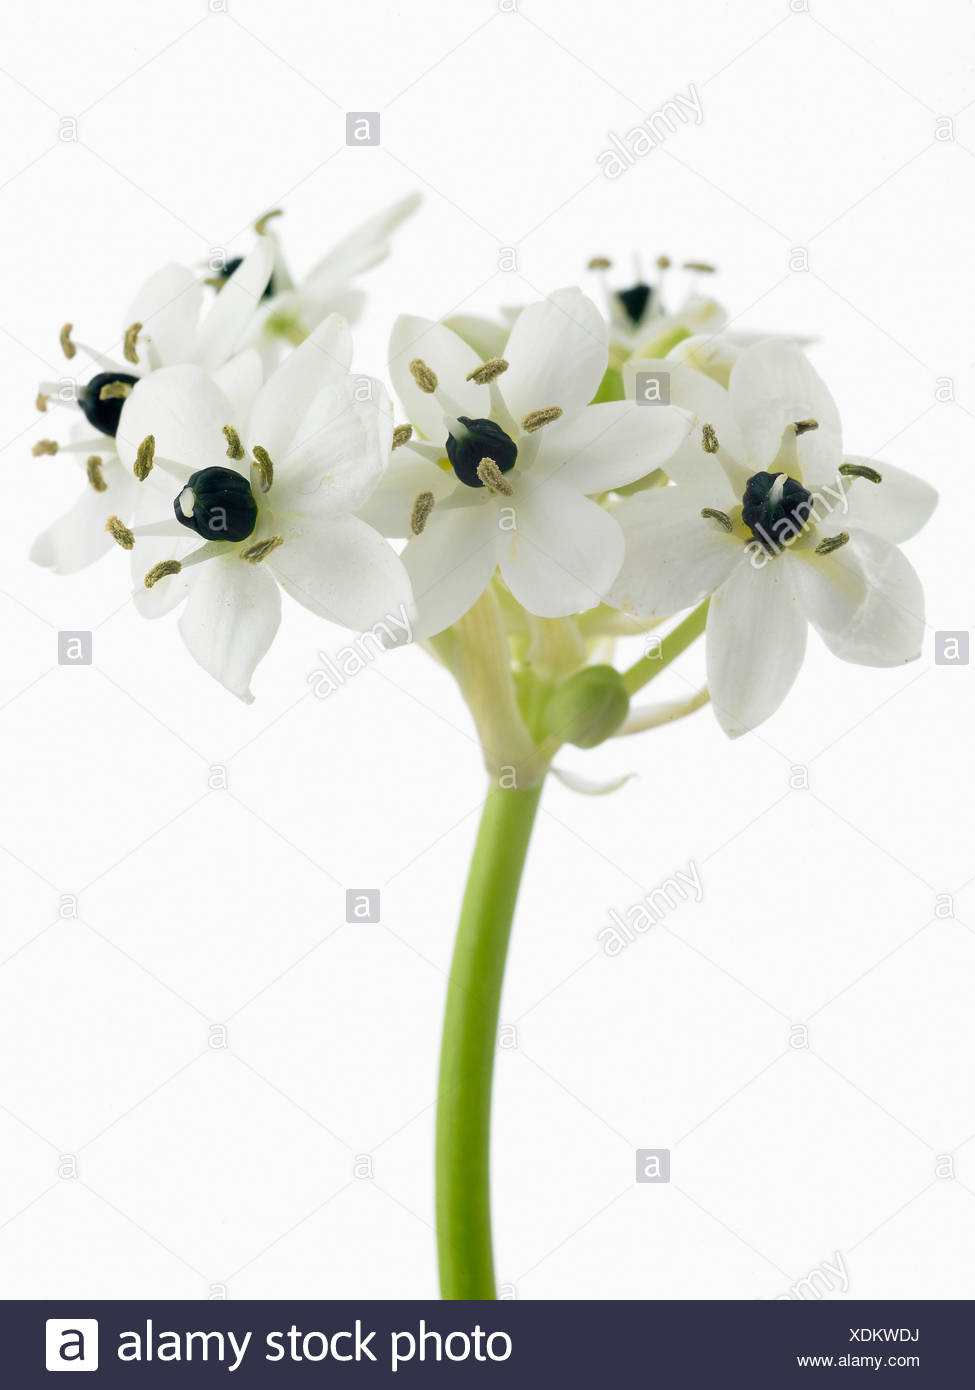 White flowers on single stem against a white background cutout stock ornithogalum arabicum star of bethlehem white flowers on single stem against a white background mightylinksfo